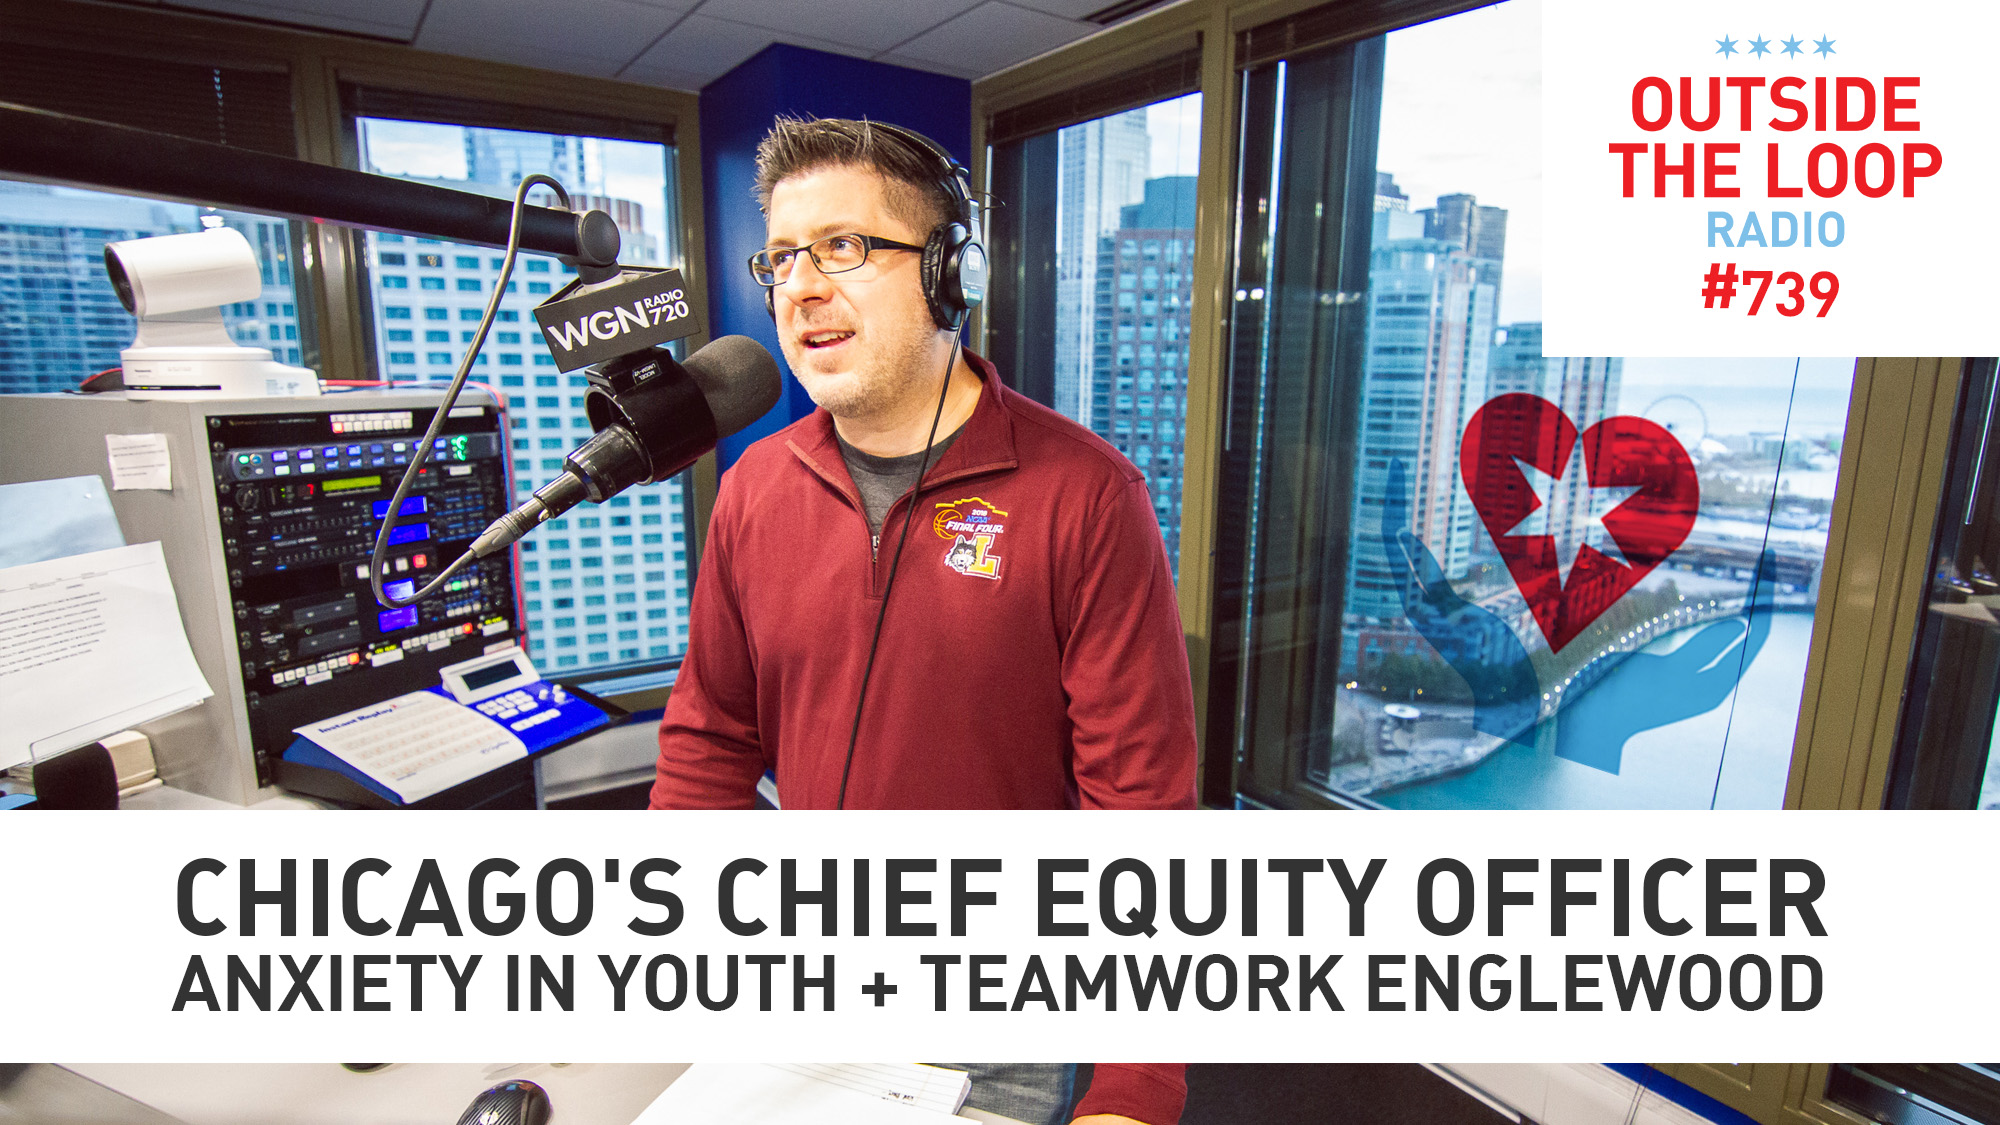 Mike Stephen talks to Chicago's Chief Equity Officer, Candace Moore.